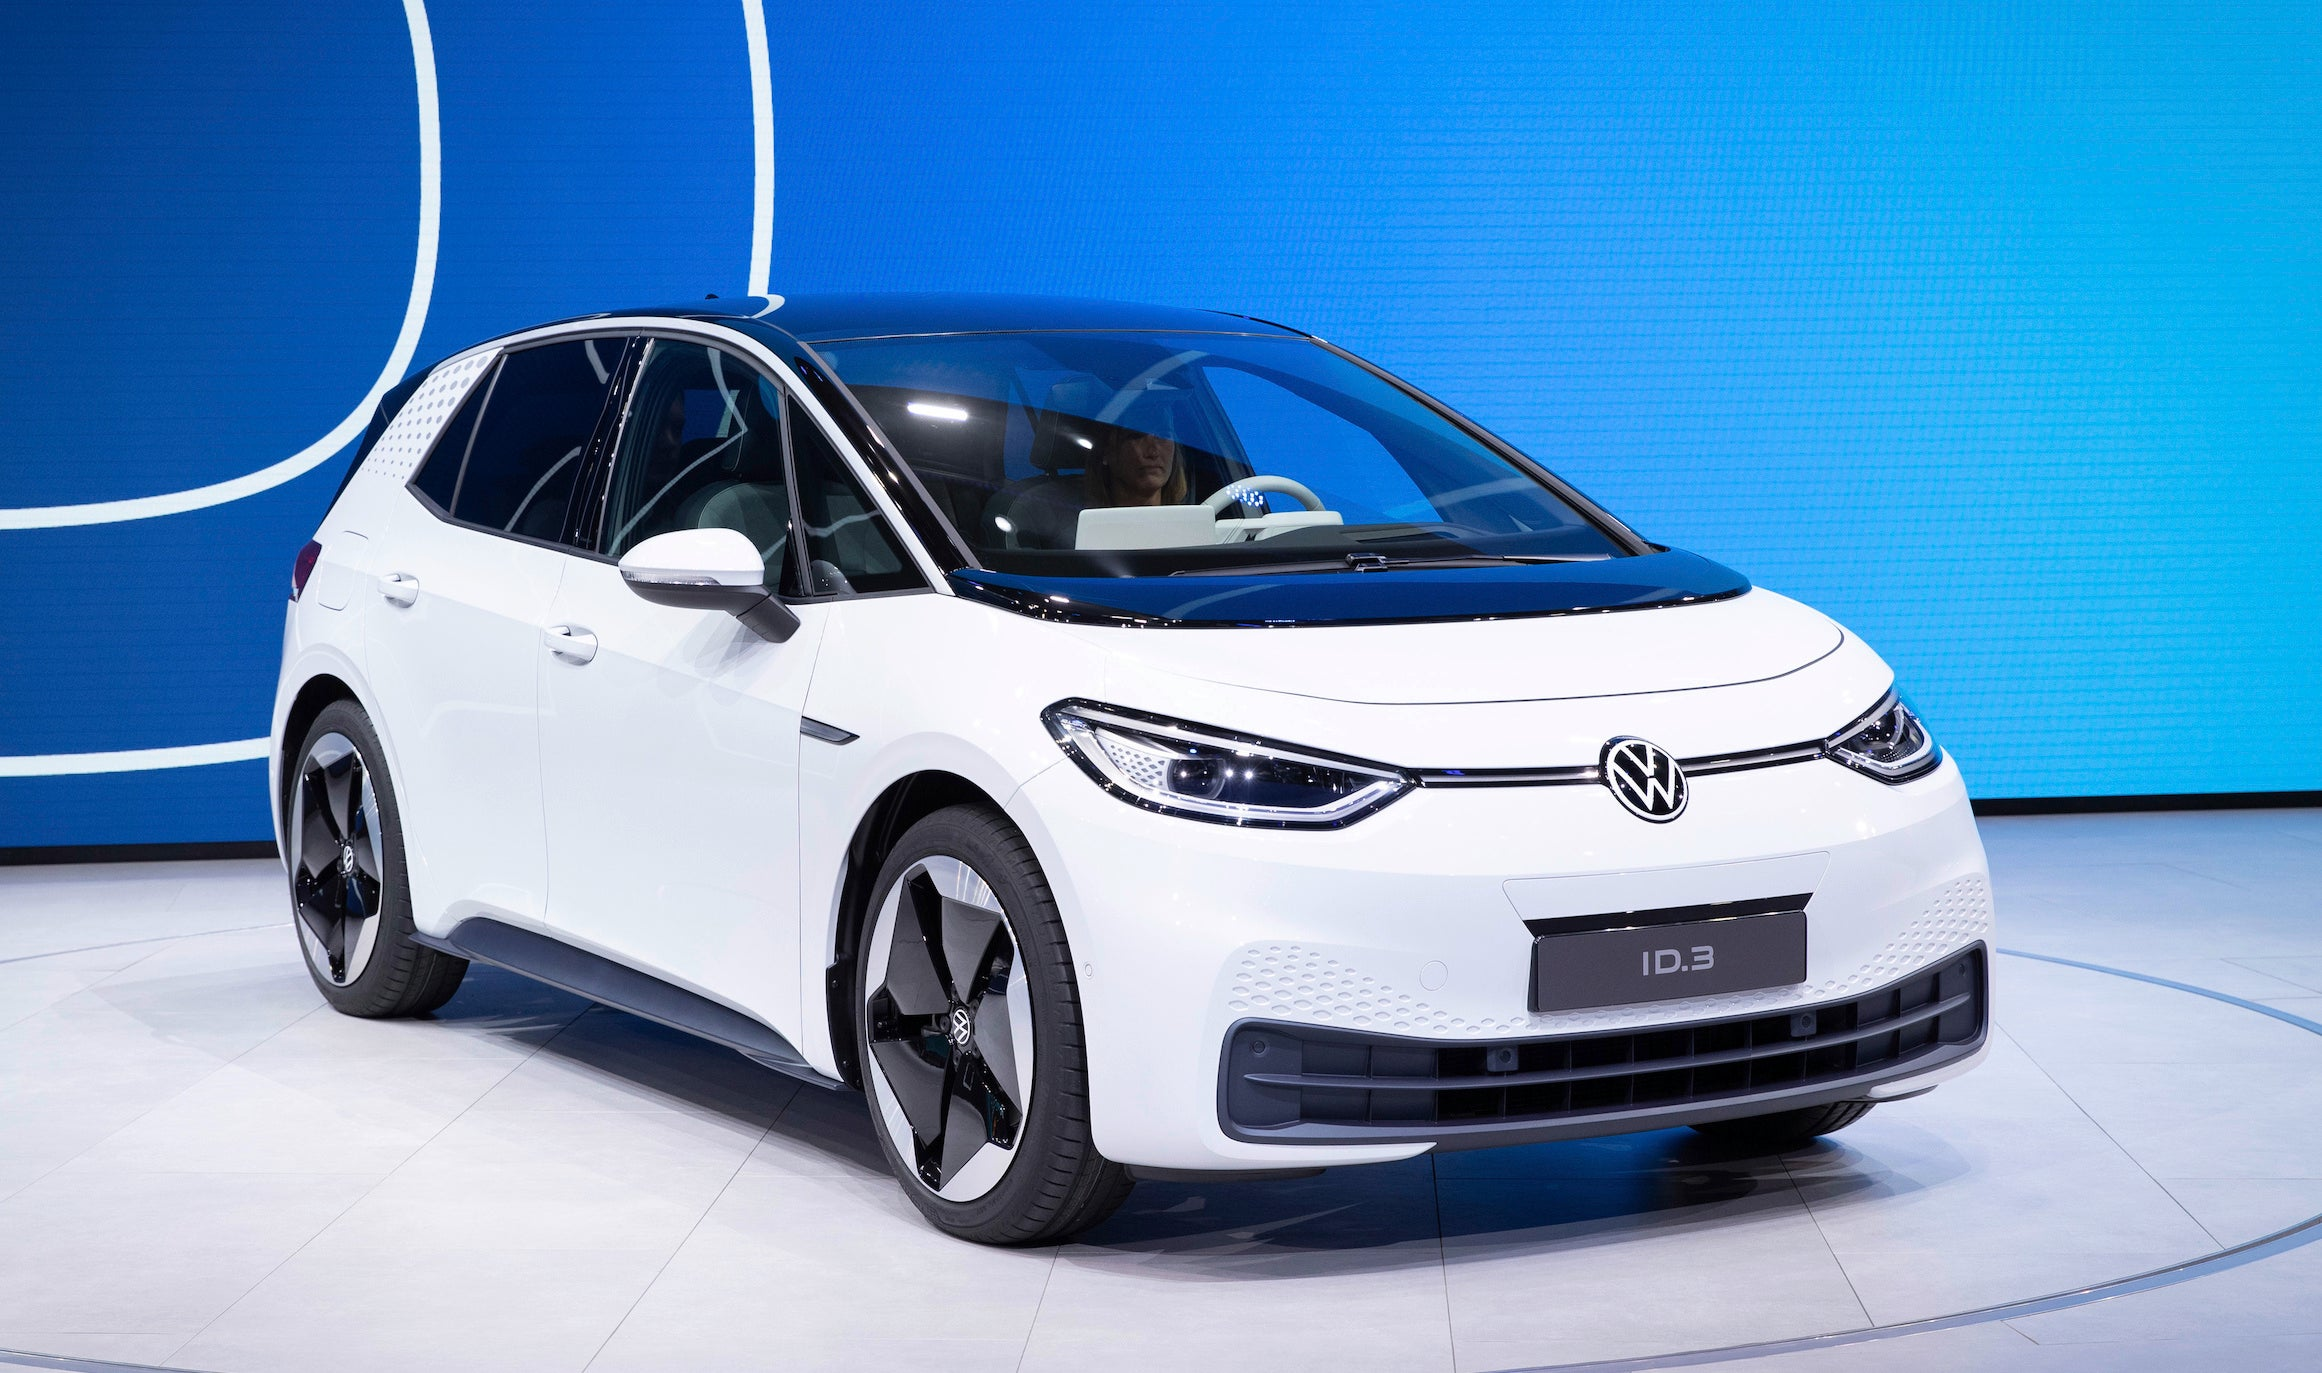 Why Volkswagen Hopes This Electric Car Will Be As Big As